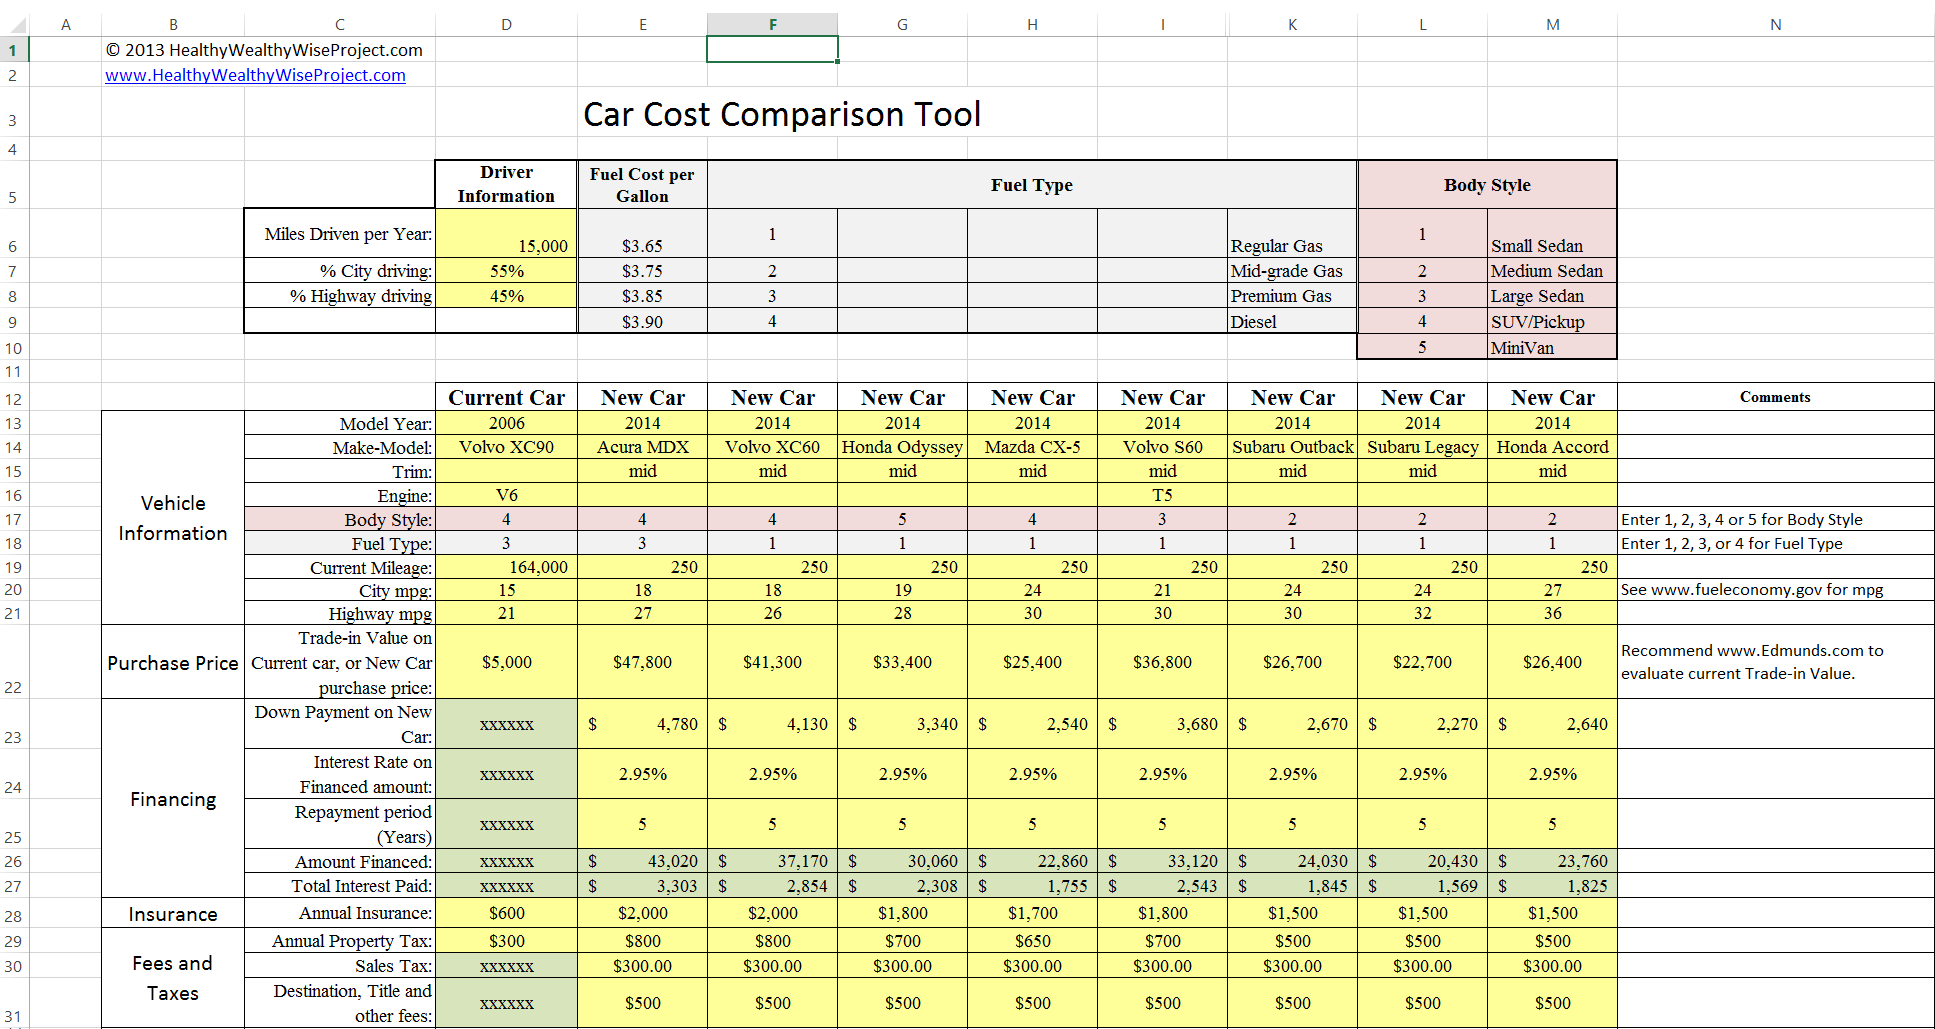 Car Shopping Comparison Spreadsheet Throughout Car Cost